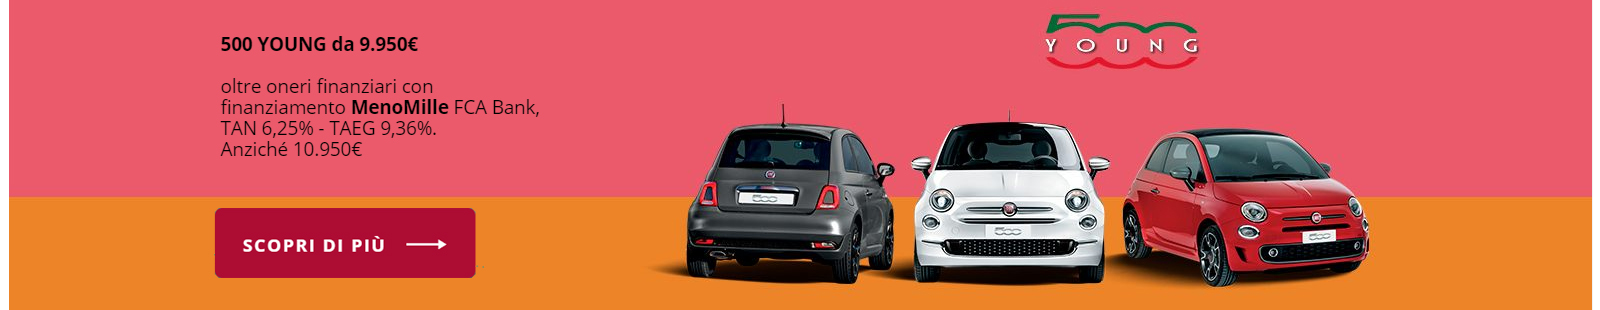 180226-fiat-500-young